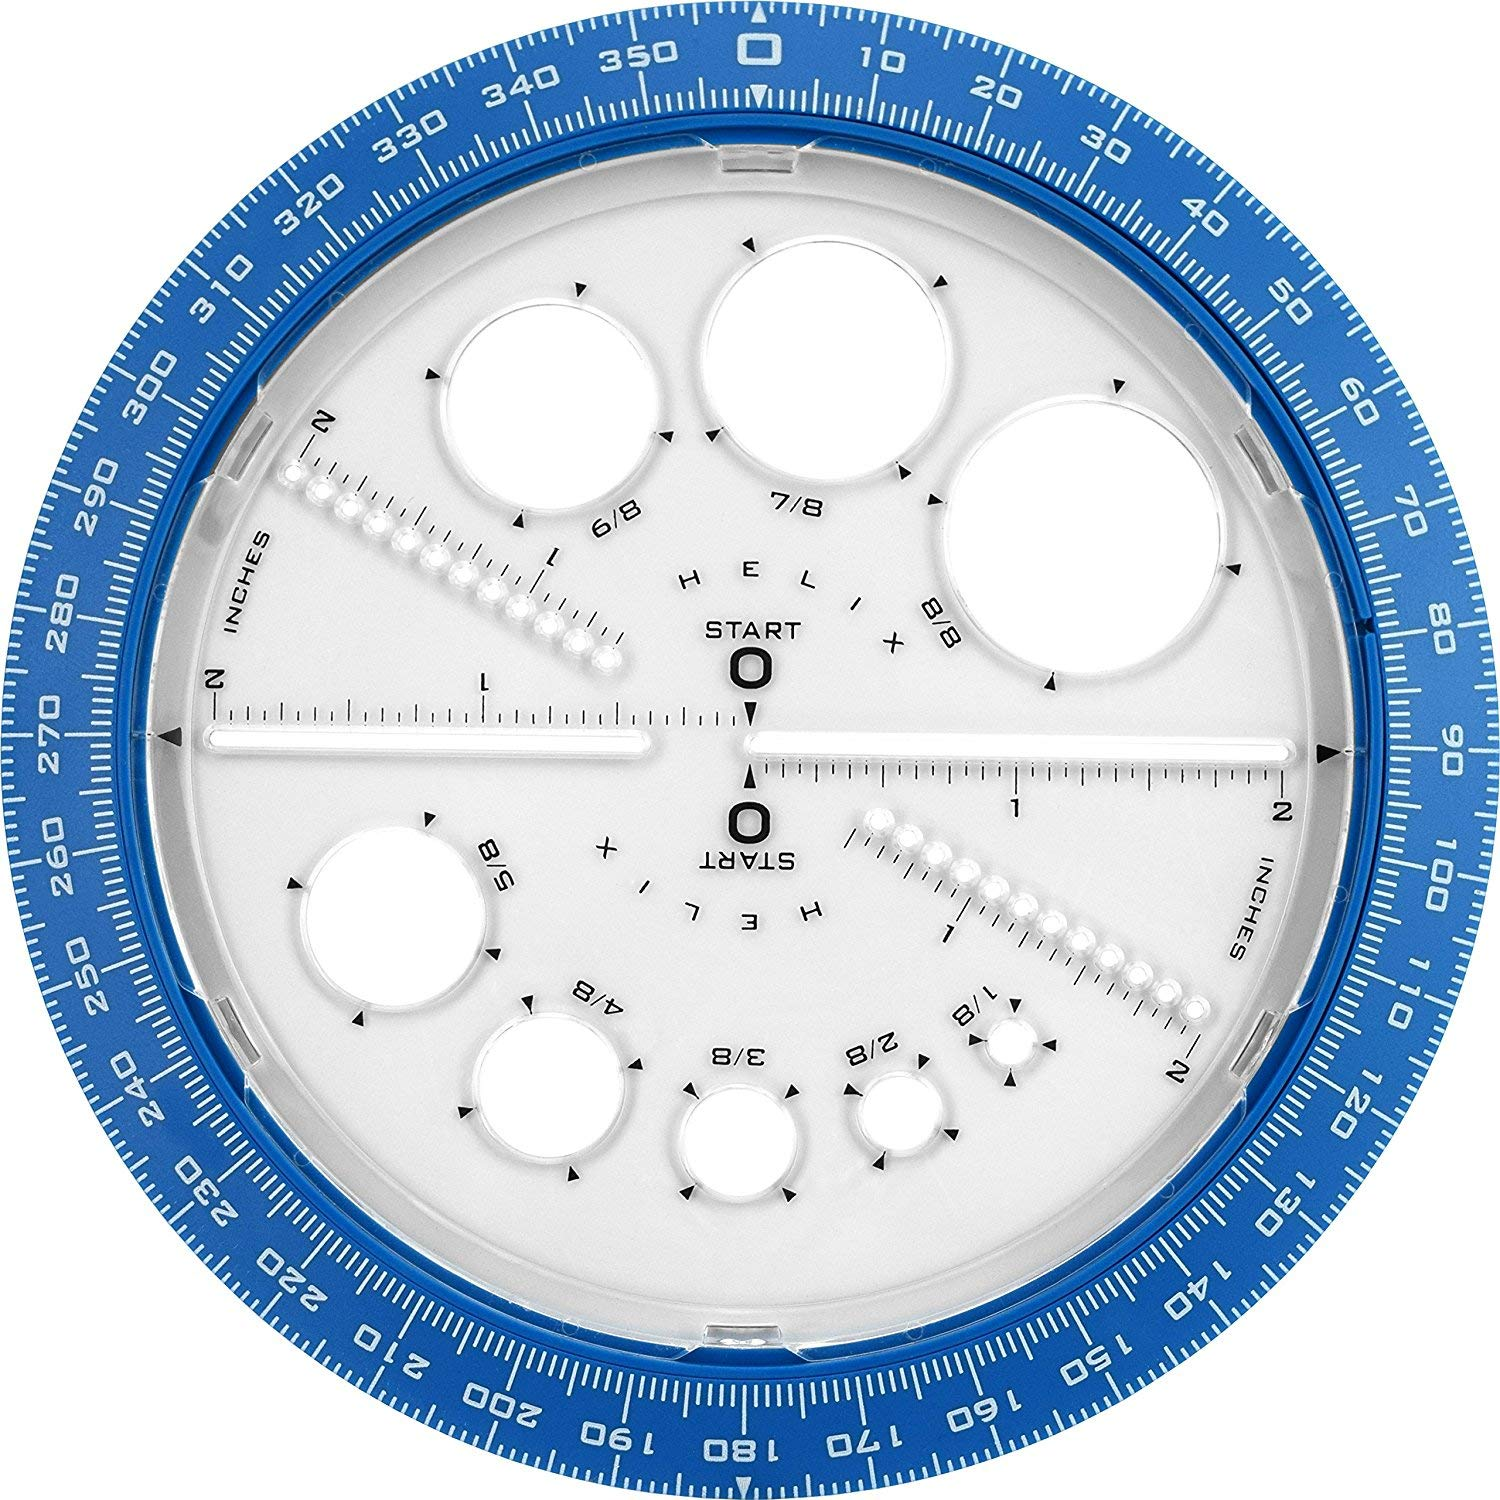 Helix 360° Angle and Circle Maker, Assorted Colors, 5 Pack by Maped Helix USA (Image #2)